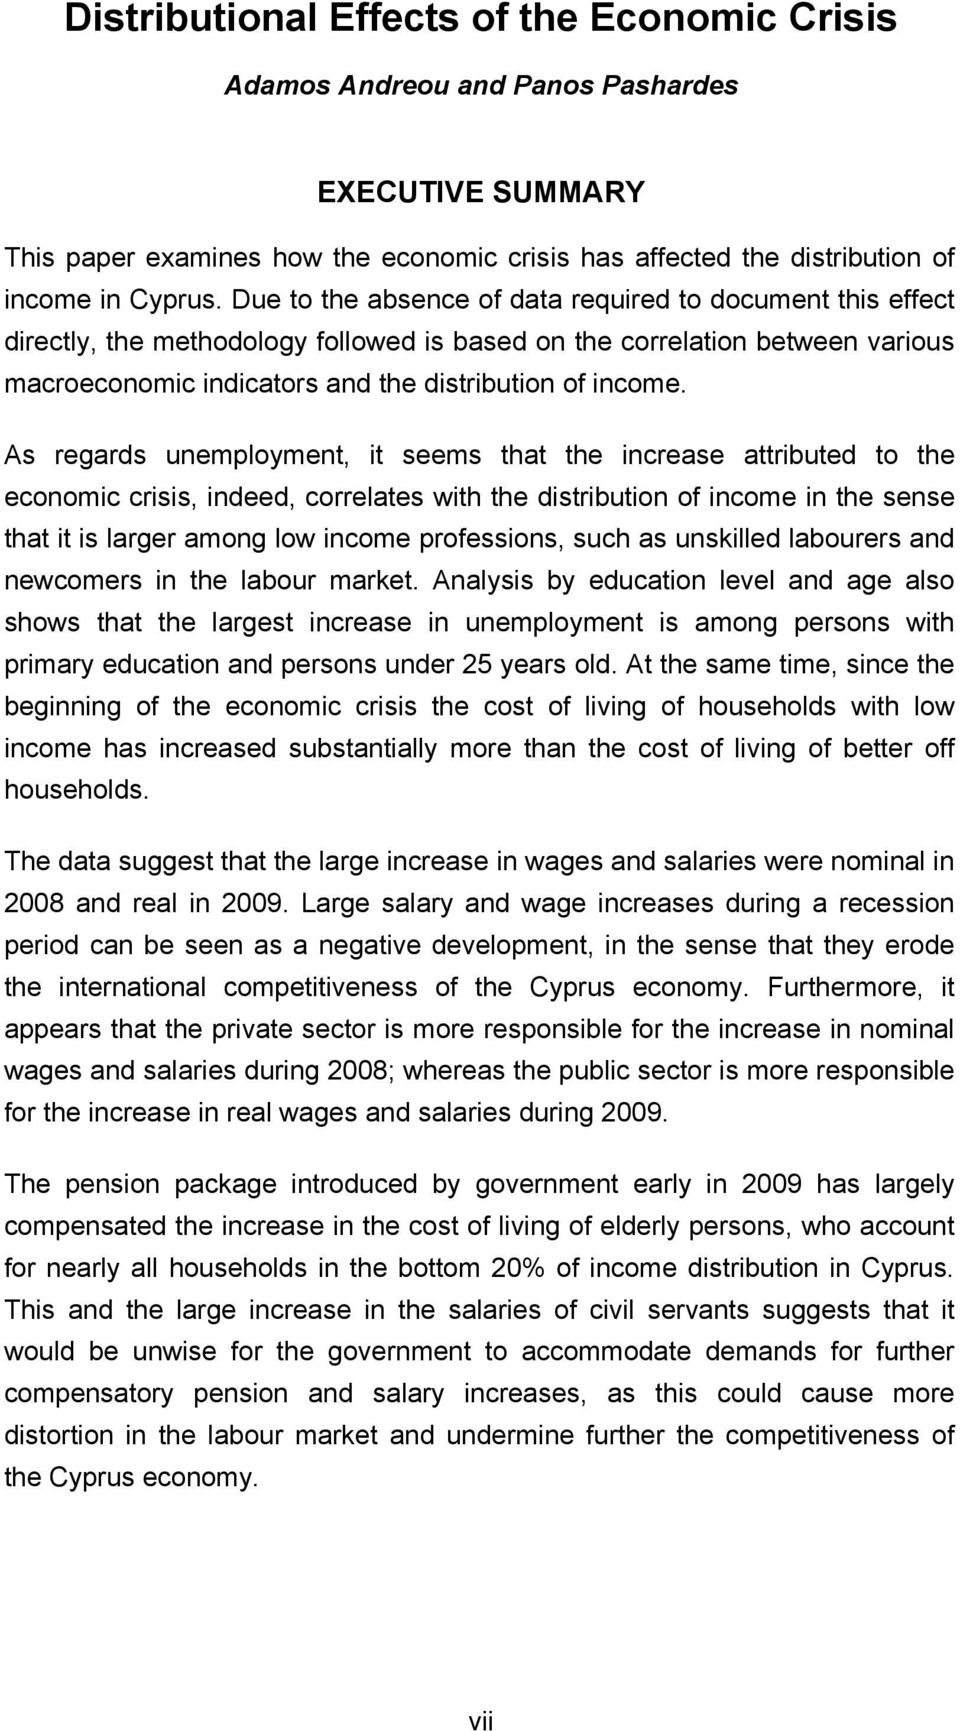 As regards unemployment, it seems that the increase attributed to the economic crisis, indeed, correlates with the distribution of income in the sense that it is larger among low income professions,